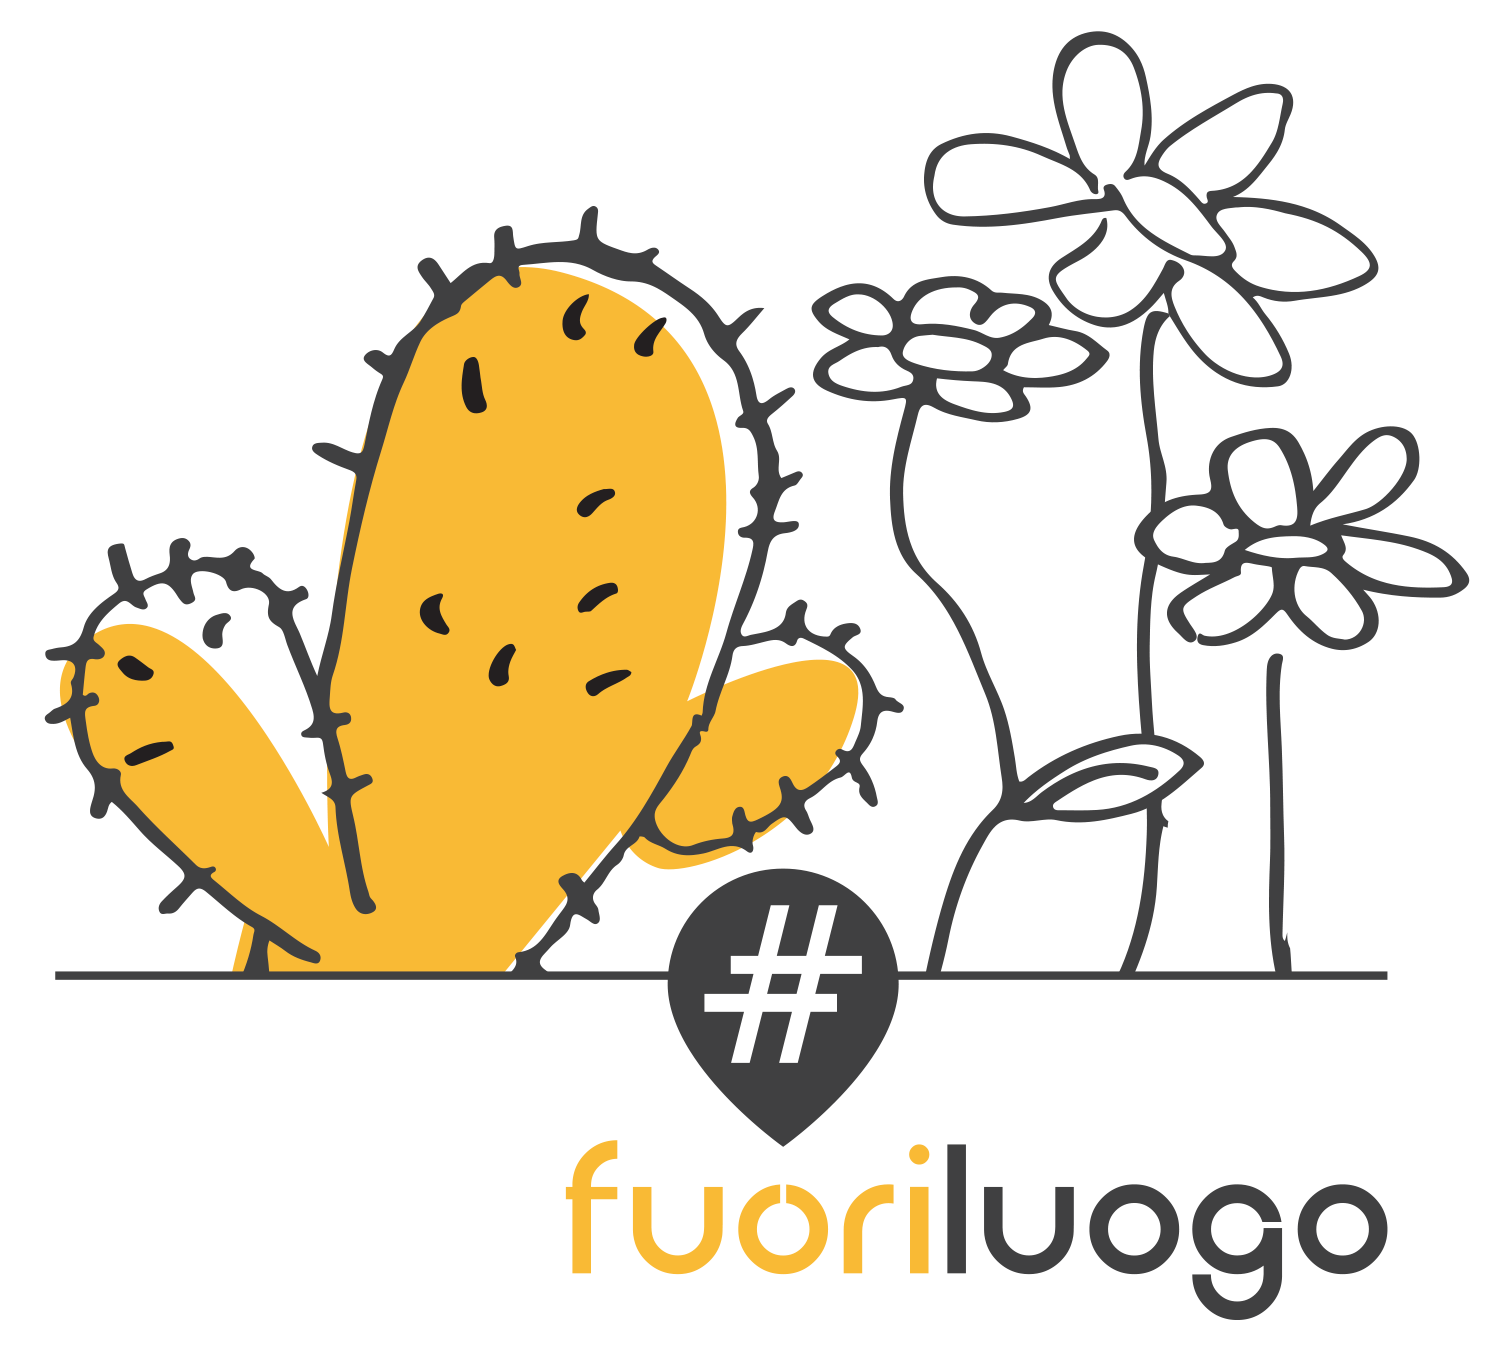 cropped-fuoriluogo_logo_2021.png